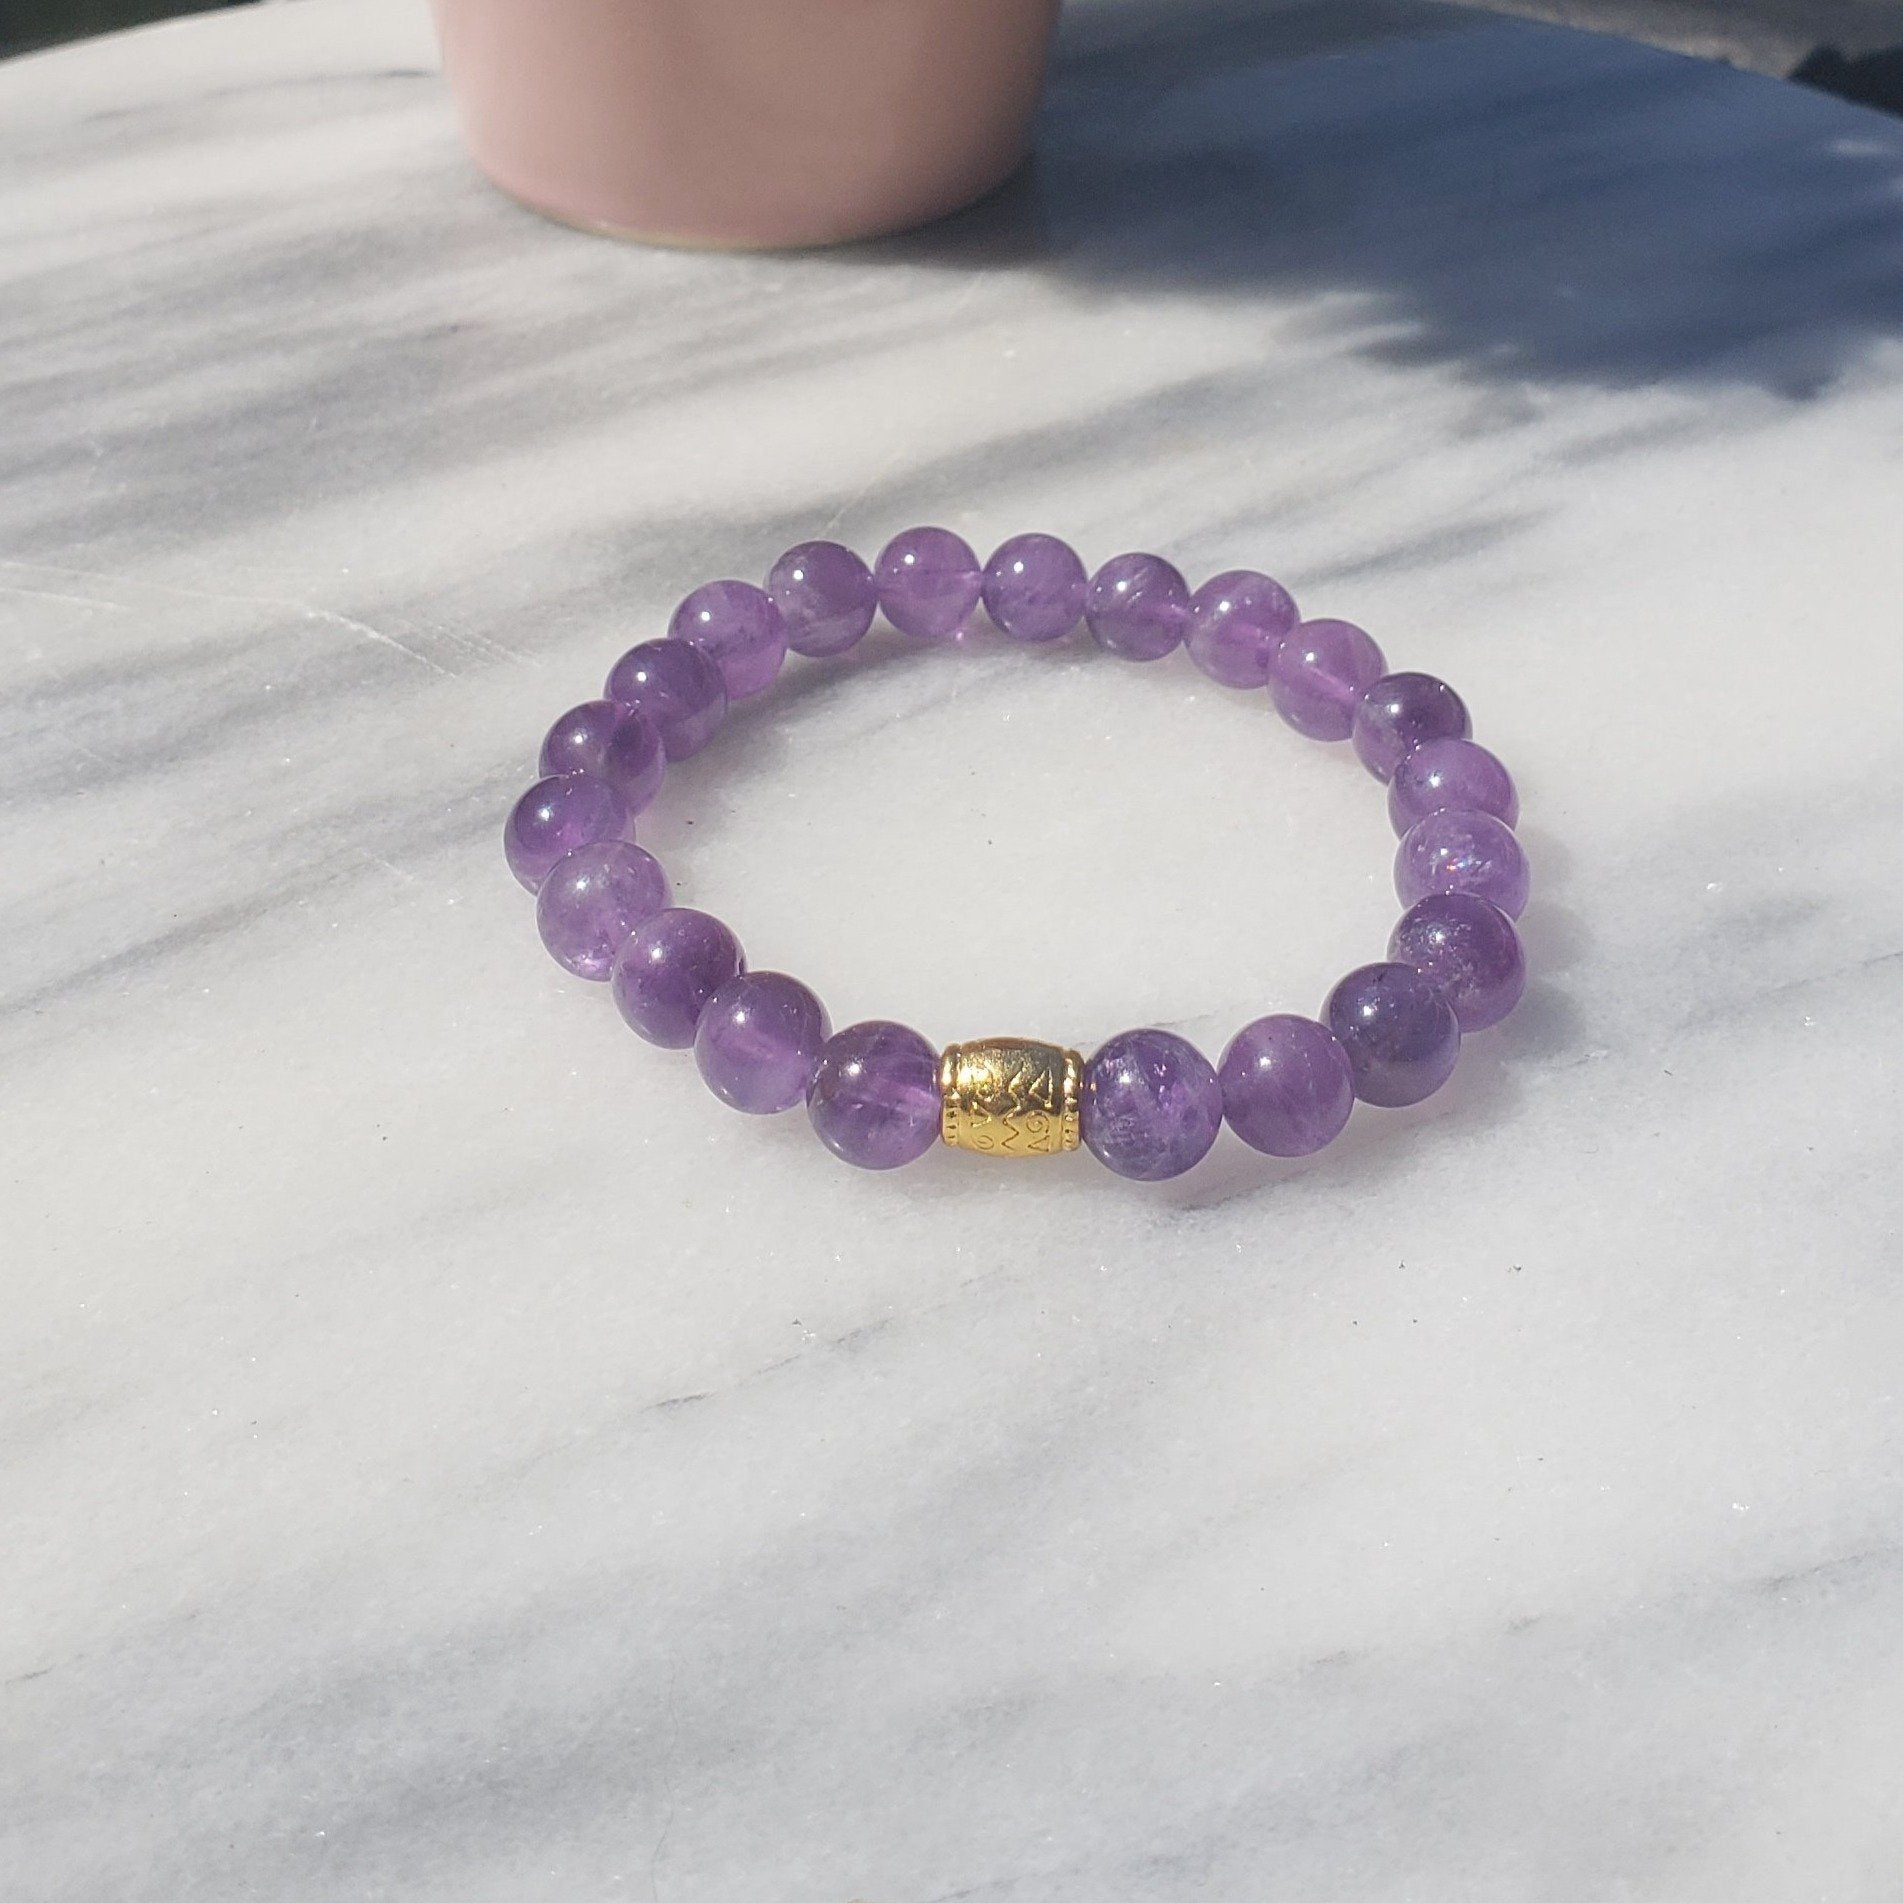 Awareness, Honesty and Inspiration | Beaded Stretch Bracelet | Amethyst Gemstone Bracelets Alora Boutique Gold